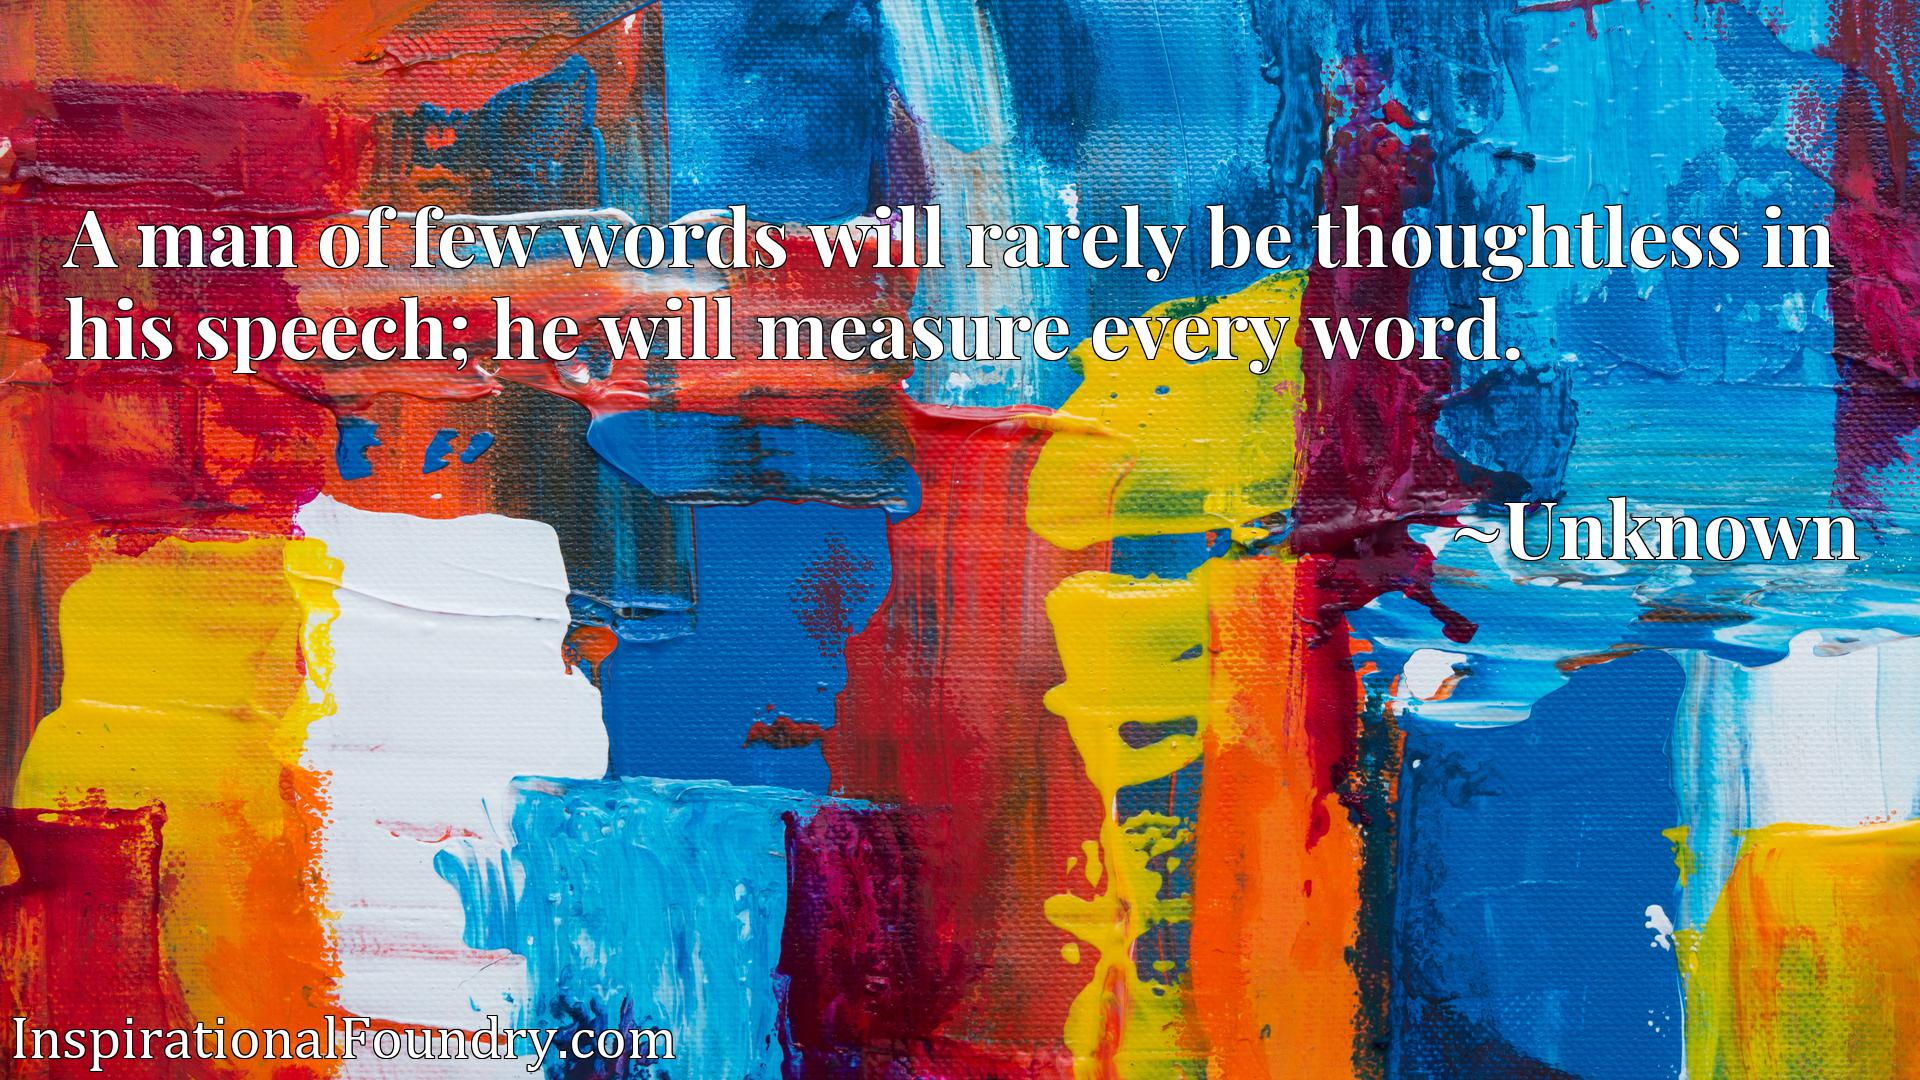 A man of few words will rarely be thoughtless in his speech; he will measure every word.